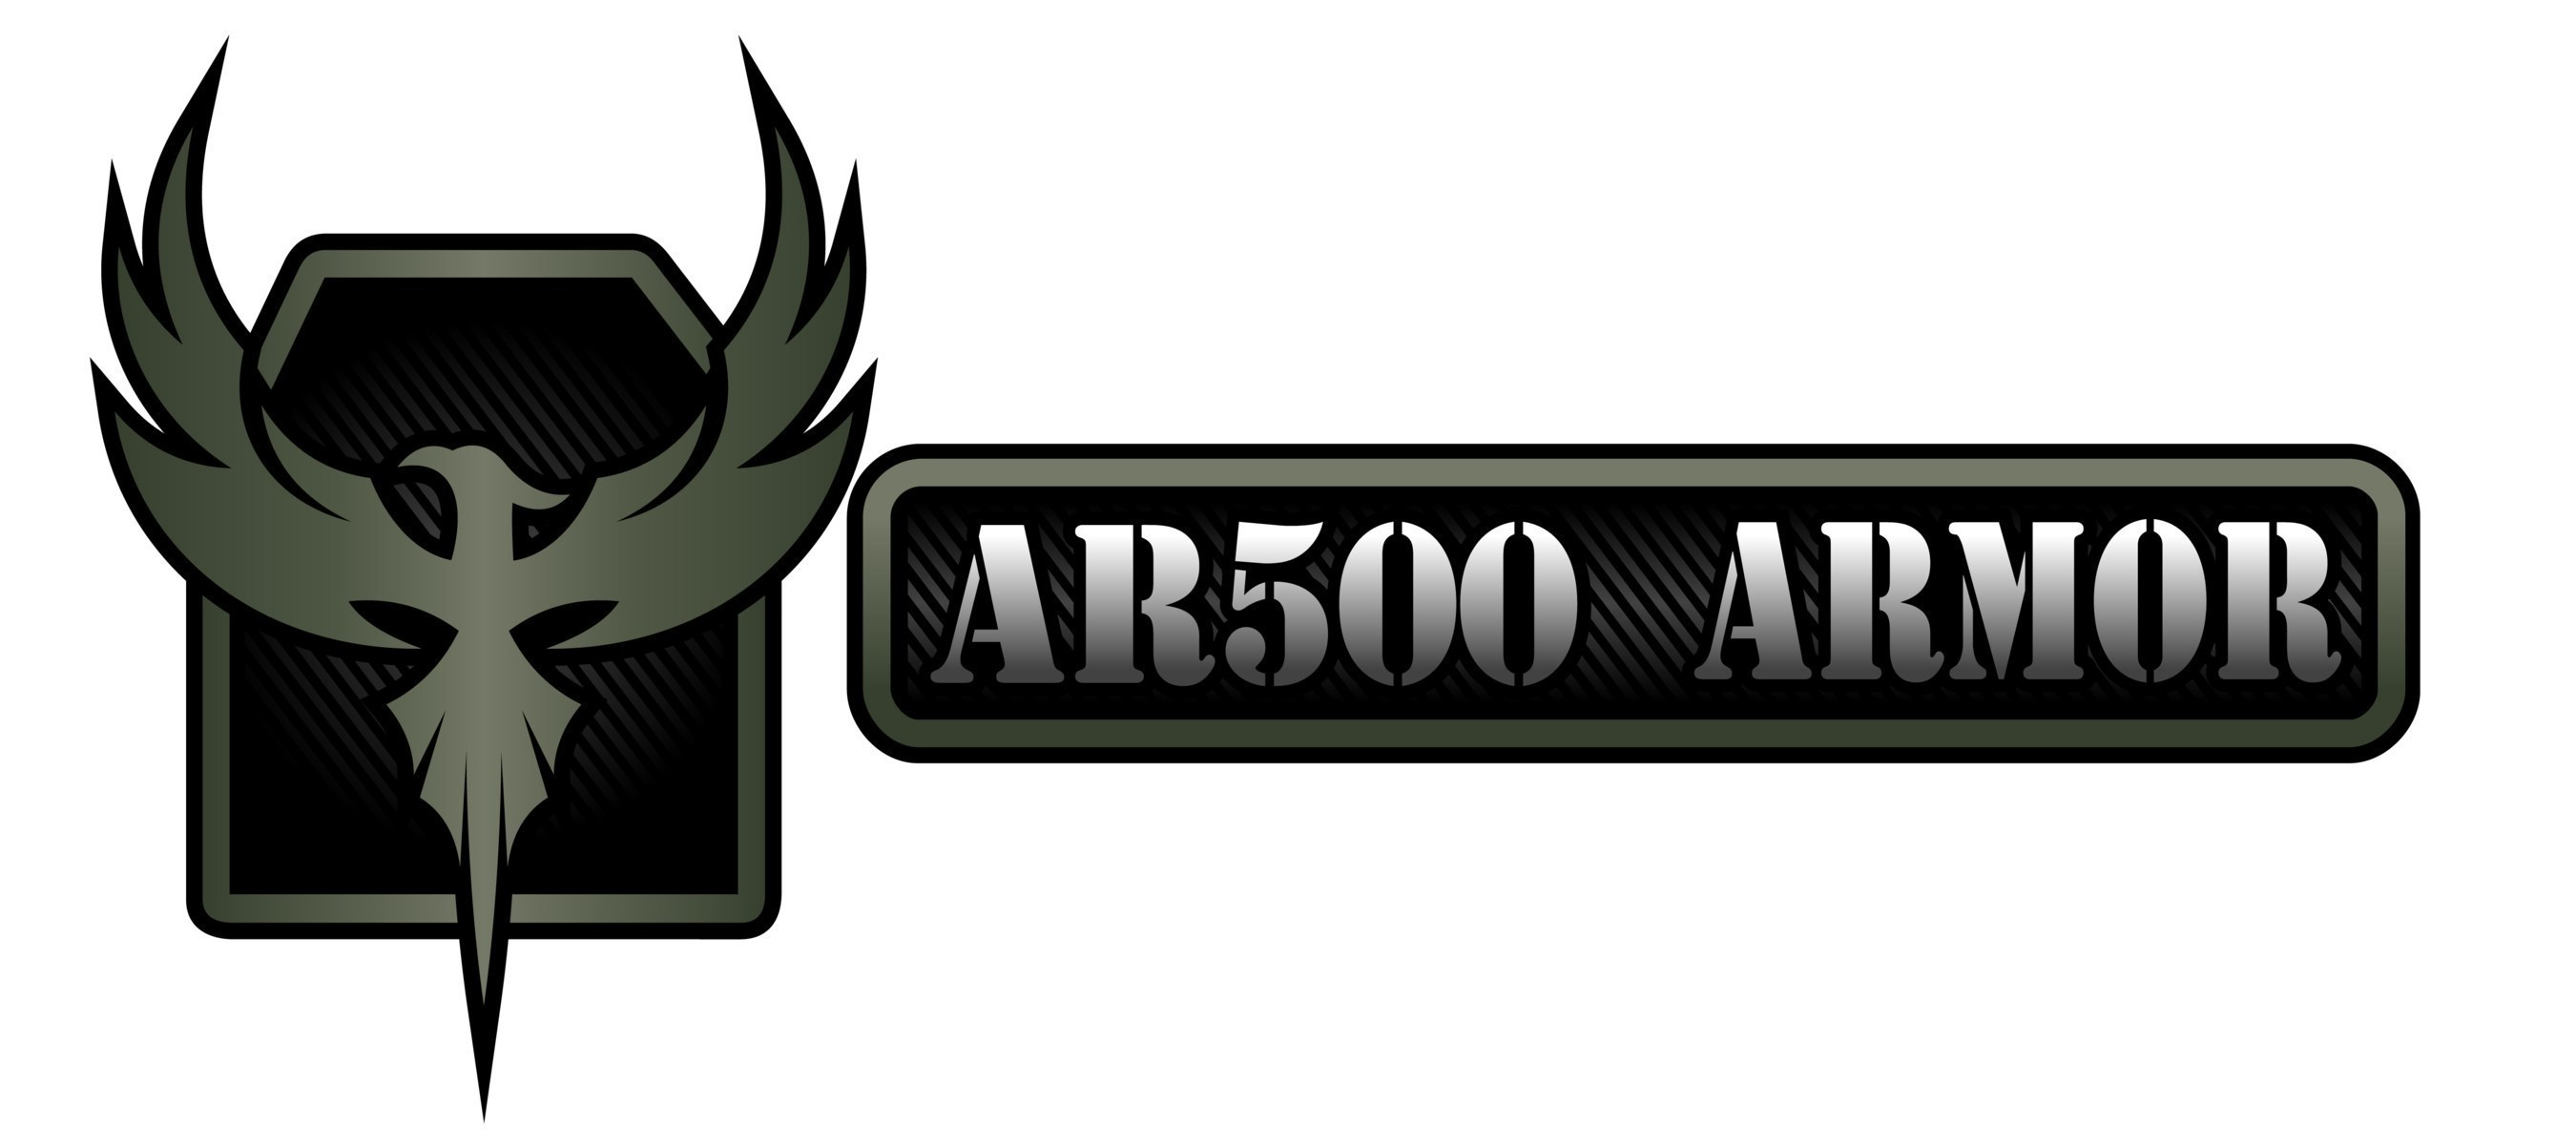 AR500 Armor(R) launched its own line of Ballistic Armor and Body Armor solutions in 2012. Choosing to enter the industry with the mind set of manufacturing top quality and reliable products that offered customers high value solutions, AR500 products are now relied upon to protect Law Abiding U.S. Citizens, law enforcement and military personnel across the United States. With their unique in-house manufacturing processes and ability to acquire material made to certain specifications, AR500 sets the standard for ballistic steel core body armor. Utilizing industry leading PAXCON spall and fragmentation mitigation coatings, the company pushed the limits on what's possible with ballistic steel. AR500 products are available through www.AR500Armor.com and authorized dealers throughout the United States. AR500 Armor is a privately held business - with its headquarters, team members, and manufacturing facility based in Phoenix, Arizona.